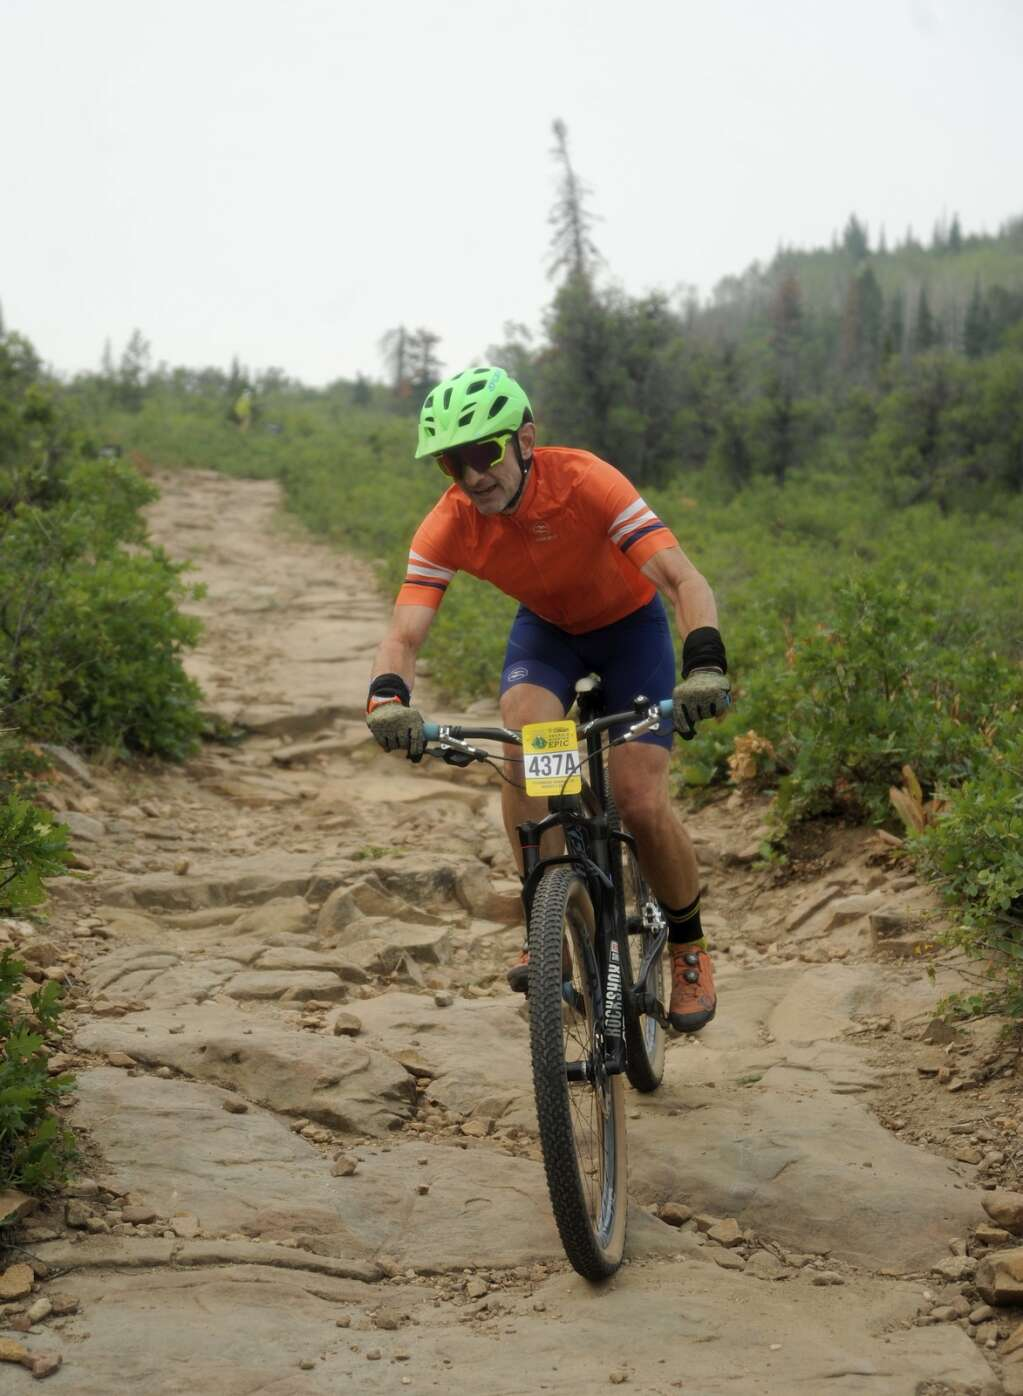 Cyclists were audibly relieved as they reached the bottom of the Little Moab descent on the Emerald Mountain Epic course on Saturday morning. (Photo by Shelby Reardon)